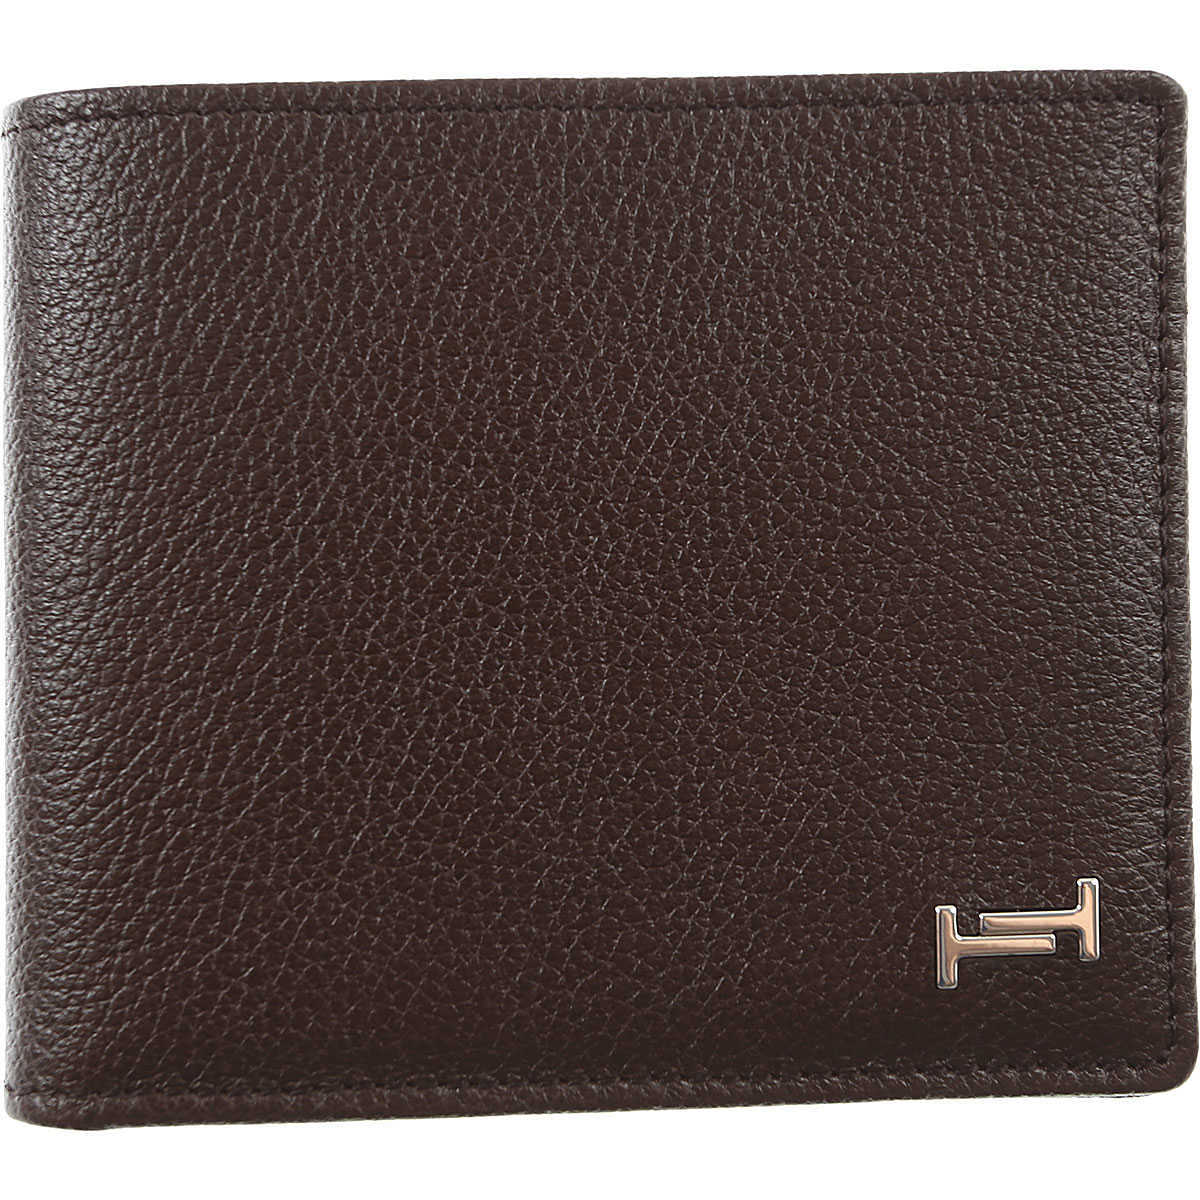 Tods Mens Wallets On Sale Brown - GOOFASH